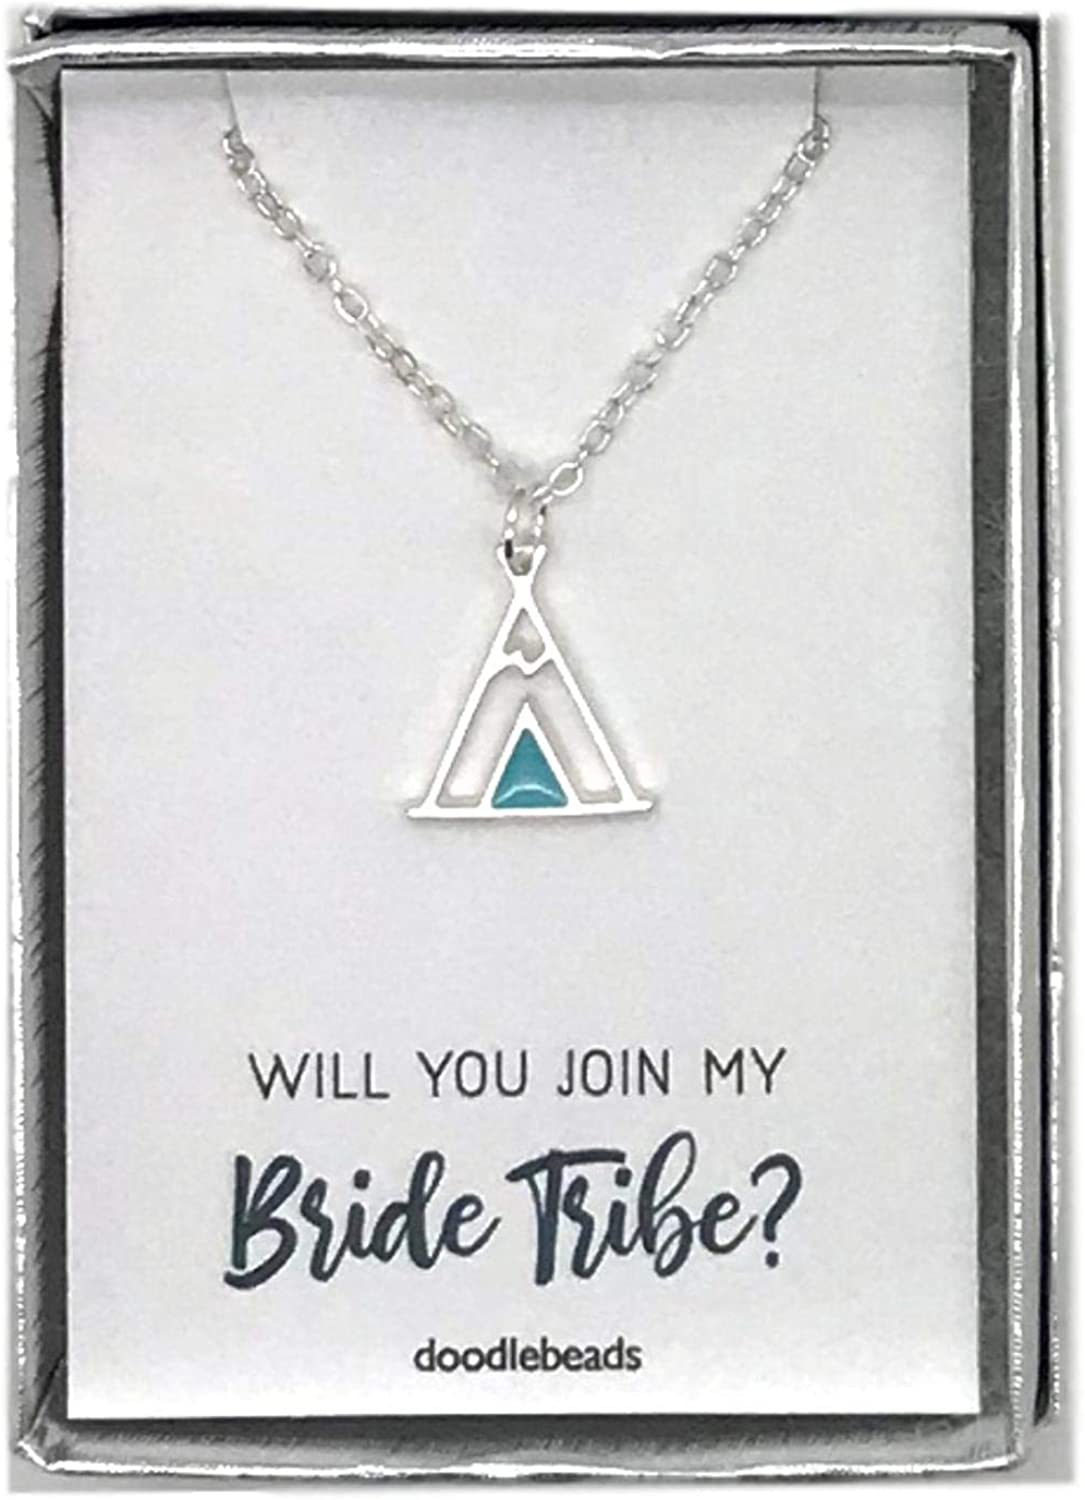 Matron of Honor Silver or Gold Teepee Necklace with Card Doodle Beads Bridesmaids Gifts Proposal Gifts Maid of Honor Will You Join My Bride Tribe